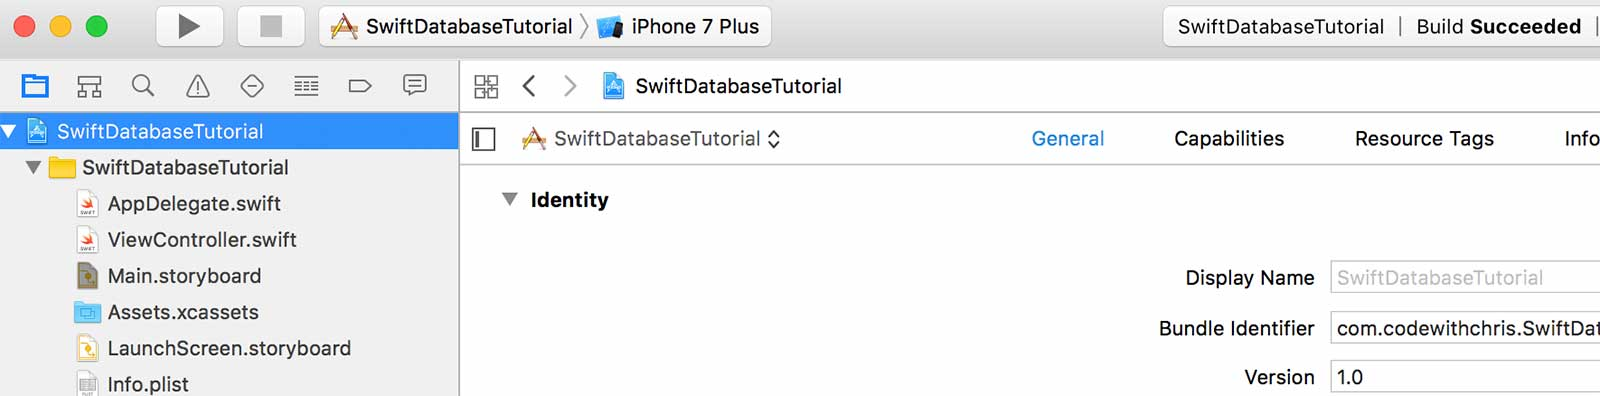 The Best Way to Connect Your iOS App to MySQL Database (4 Steps)